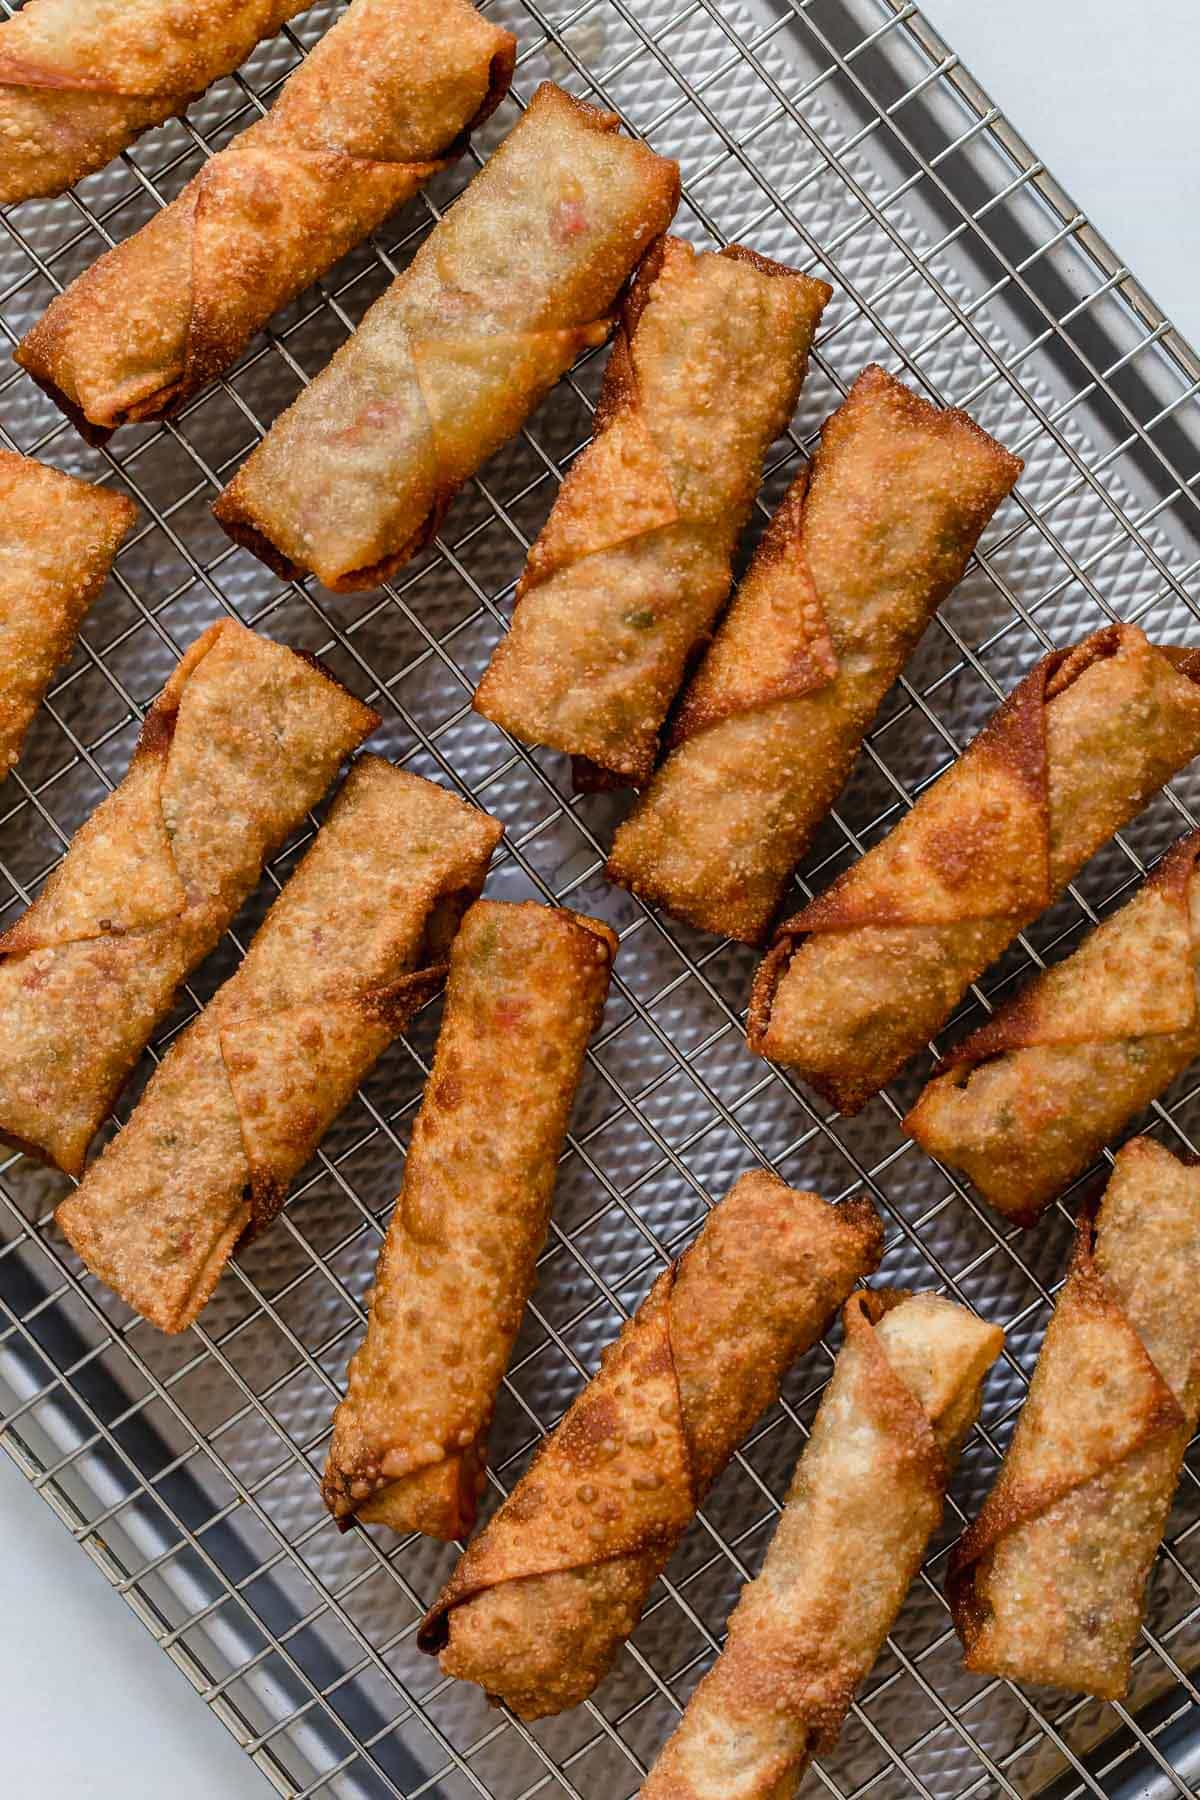 Egg rolls on a cooling rack set over a baking sheet.